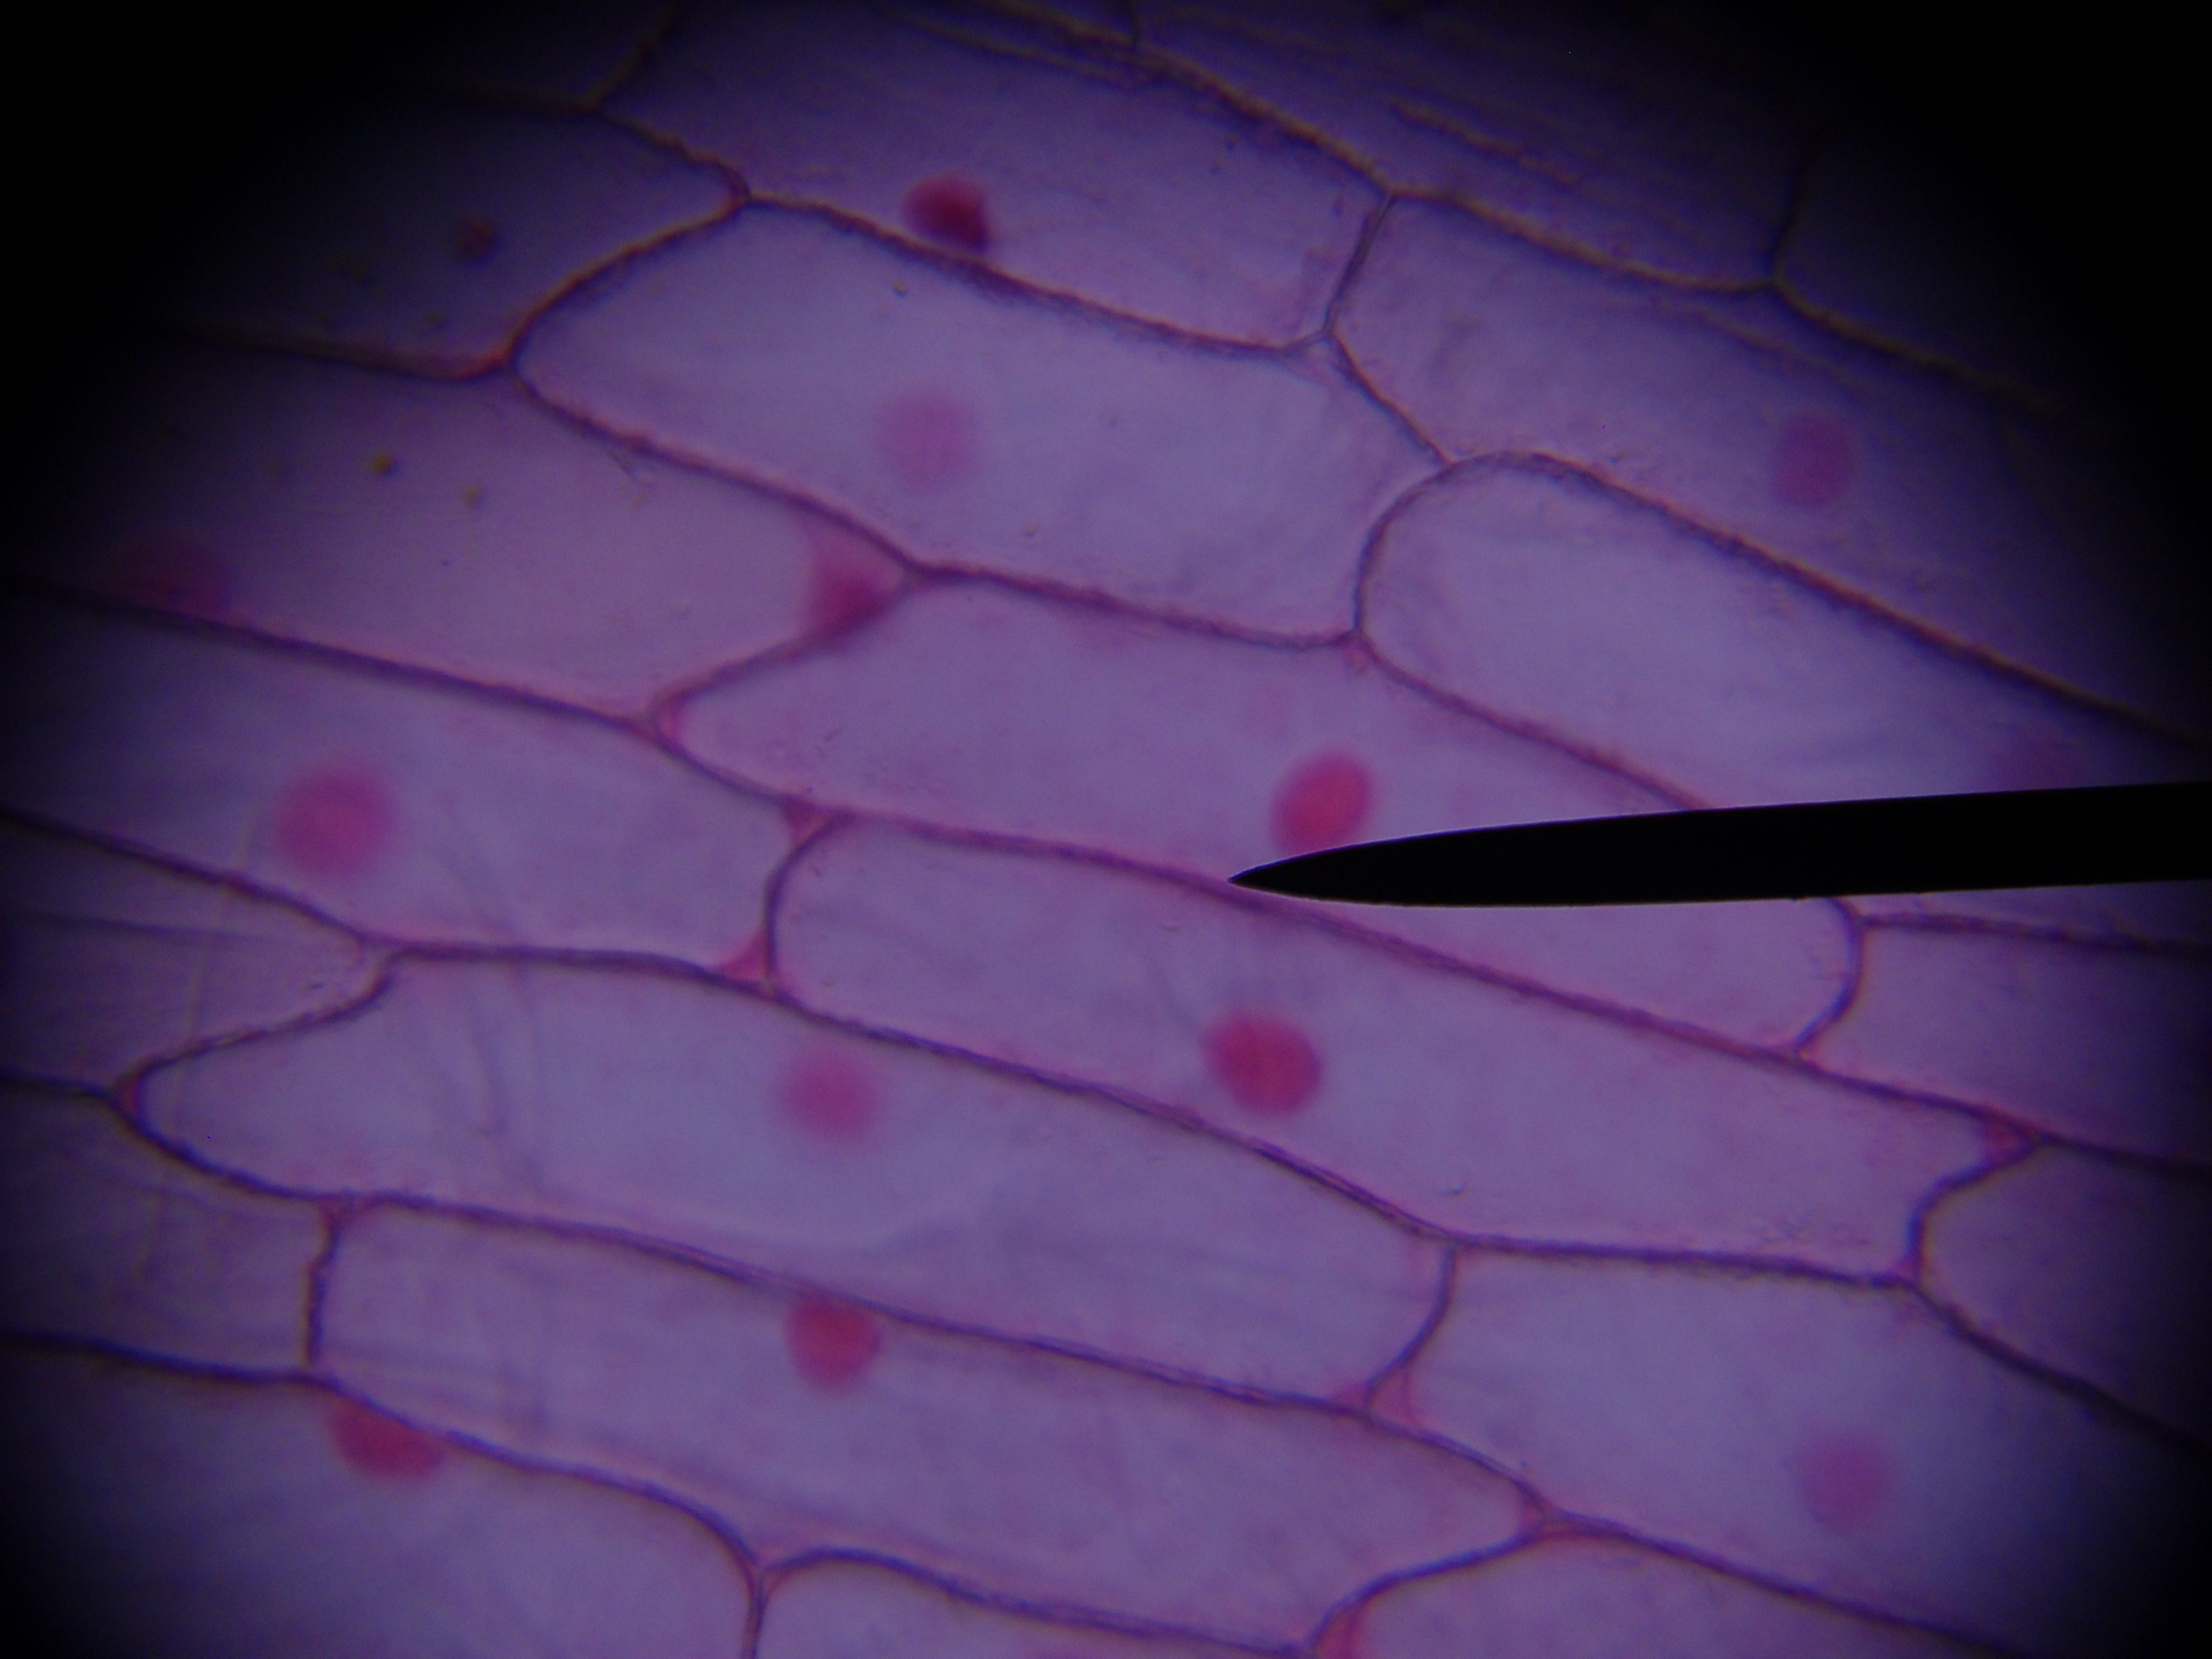 Nuclei Of Onion Cells